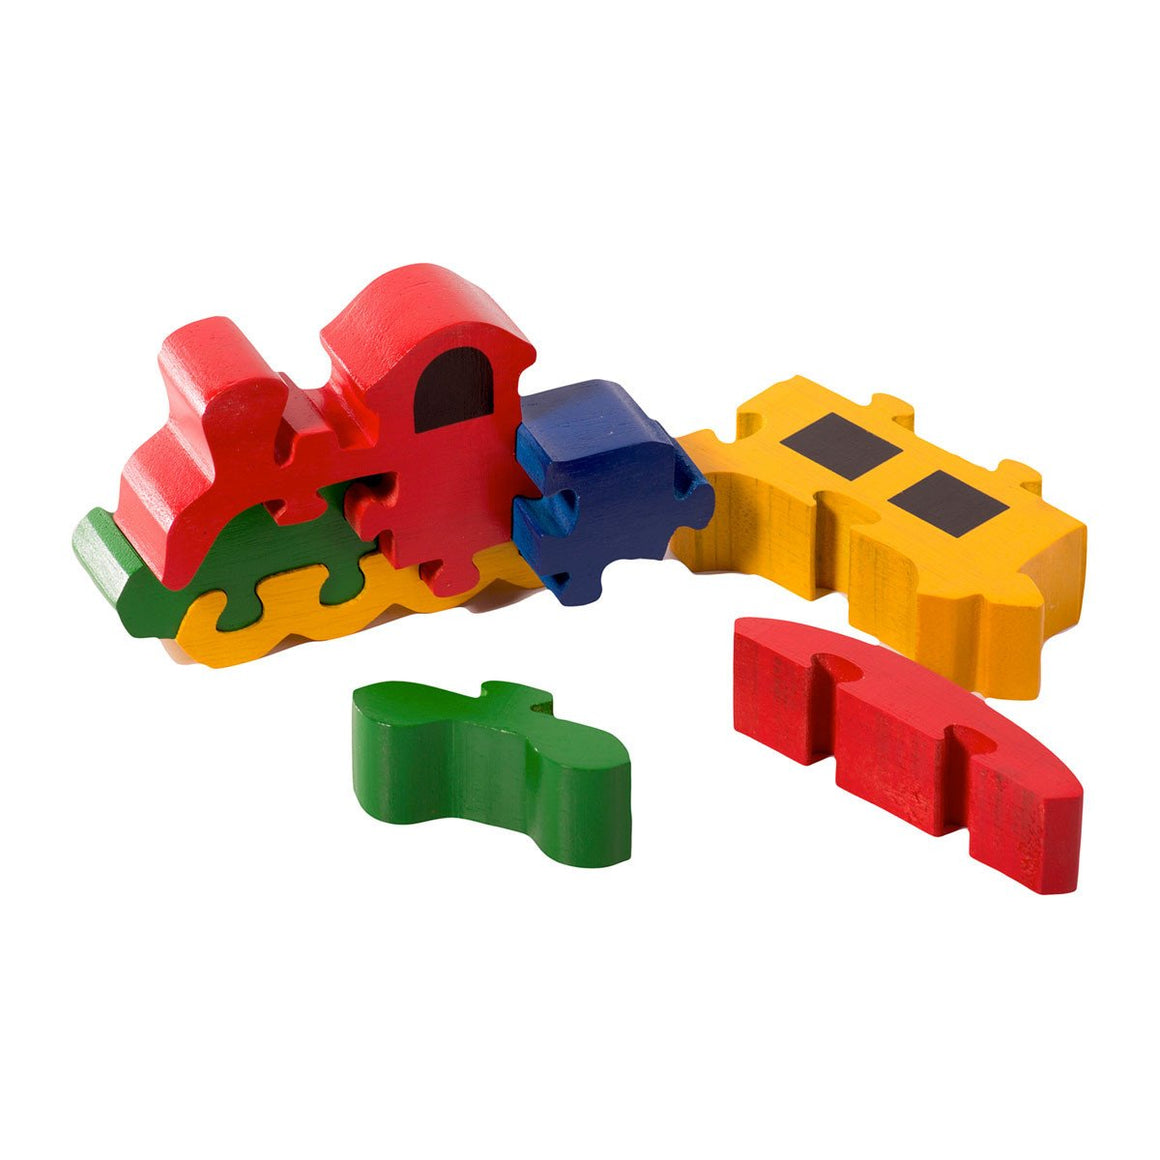 wooden puzzle games train jigsaw fun toys for kids shumee online